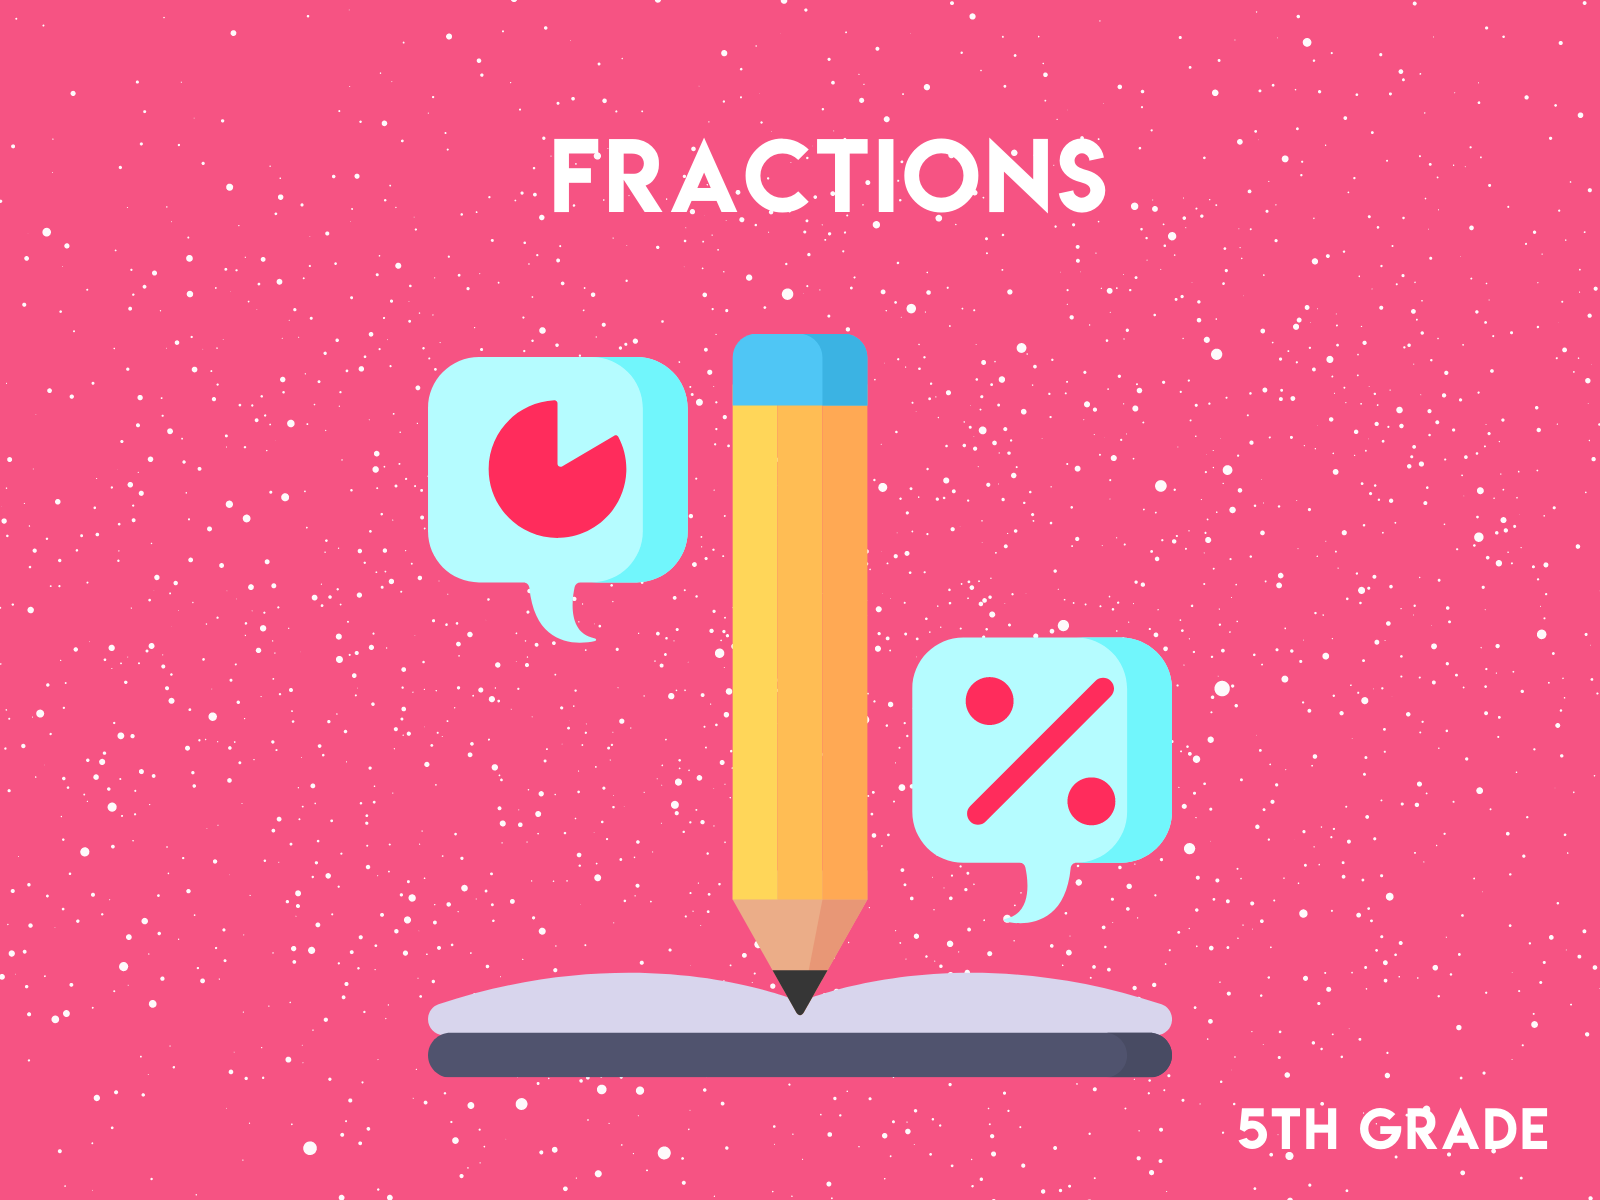 Practice reducing fractions and converting fractions in these free fifth grade math worksheets.